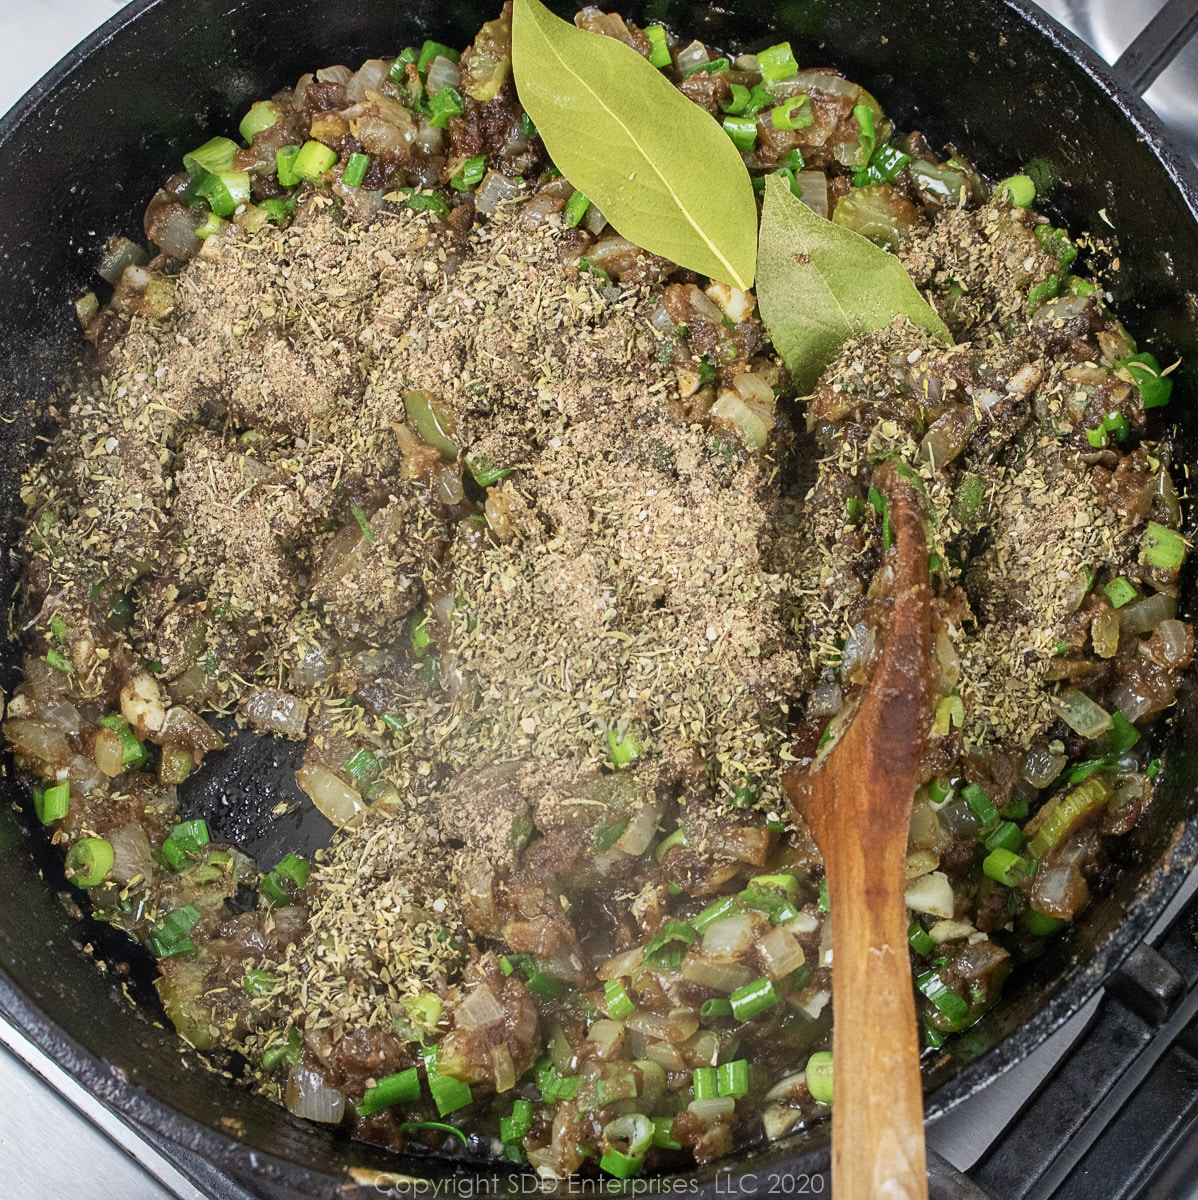 herbs and spices added to cooking roux and vegetables in a dutch oven